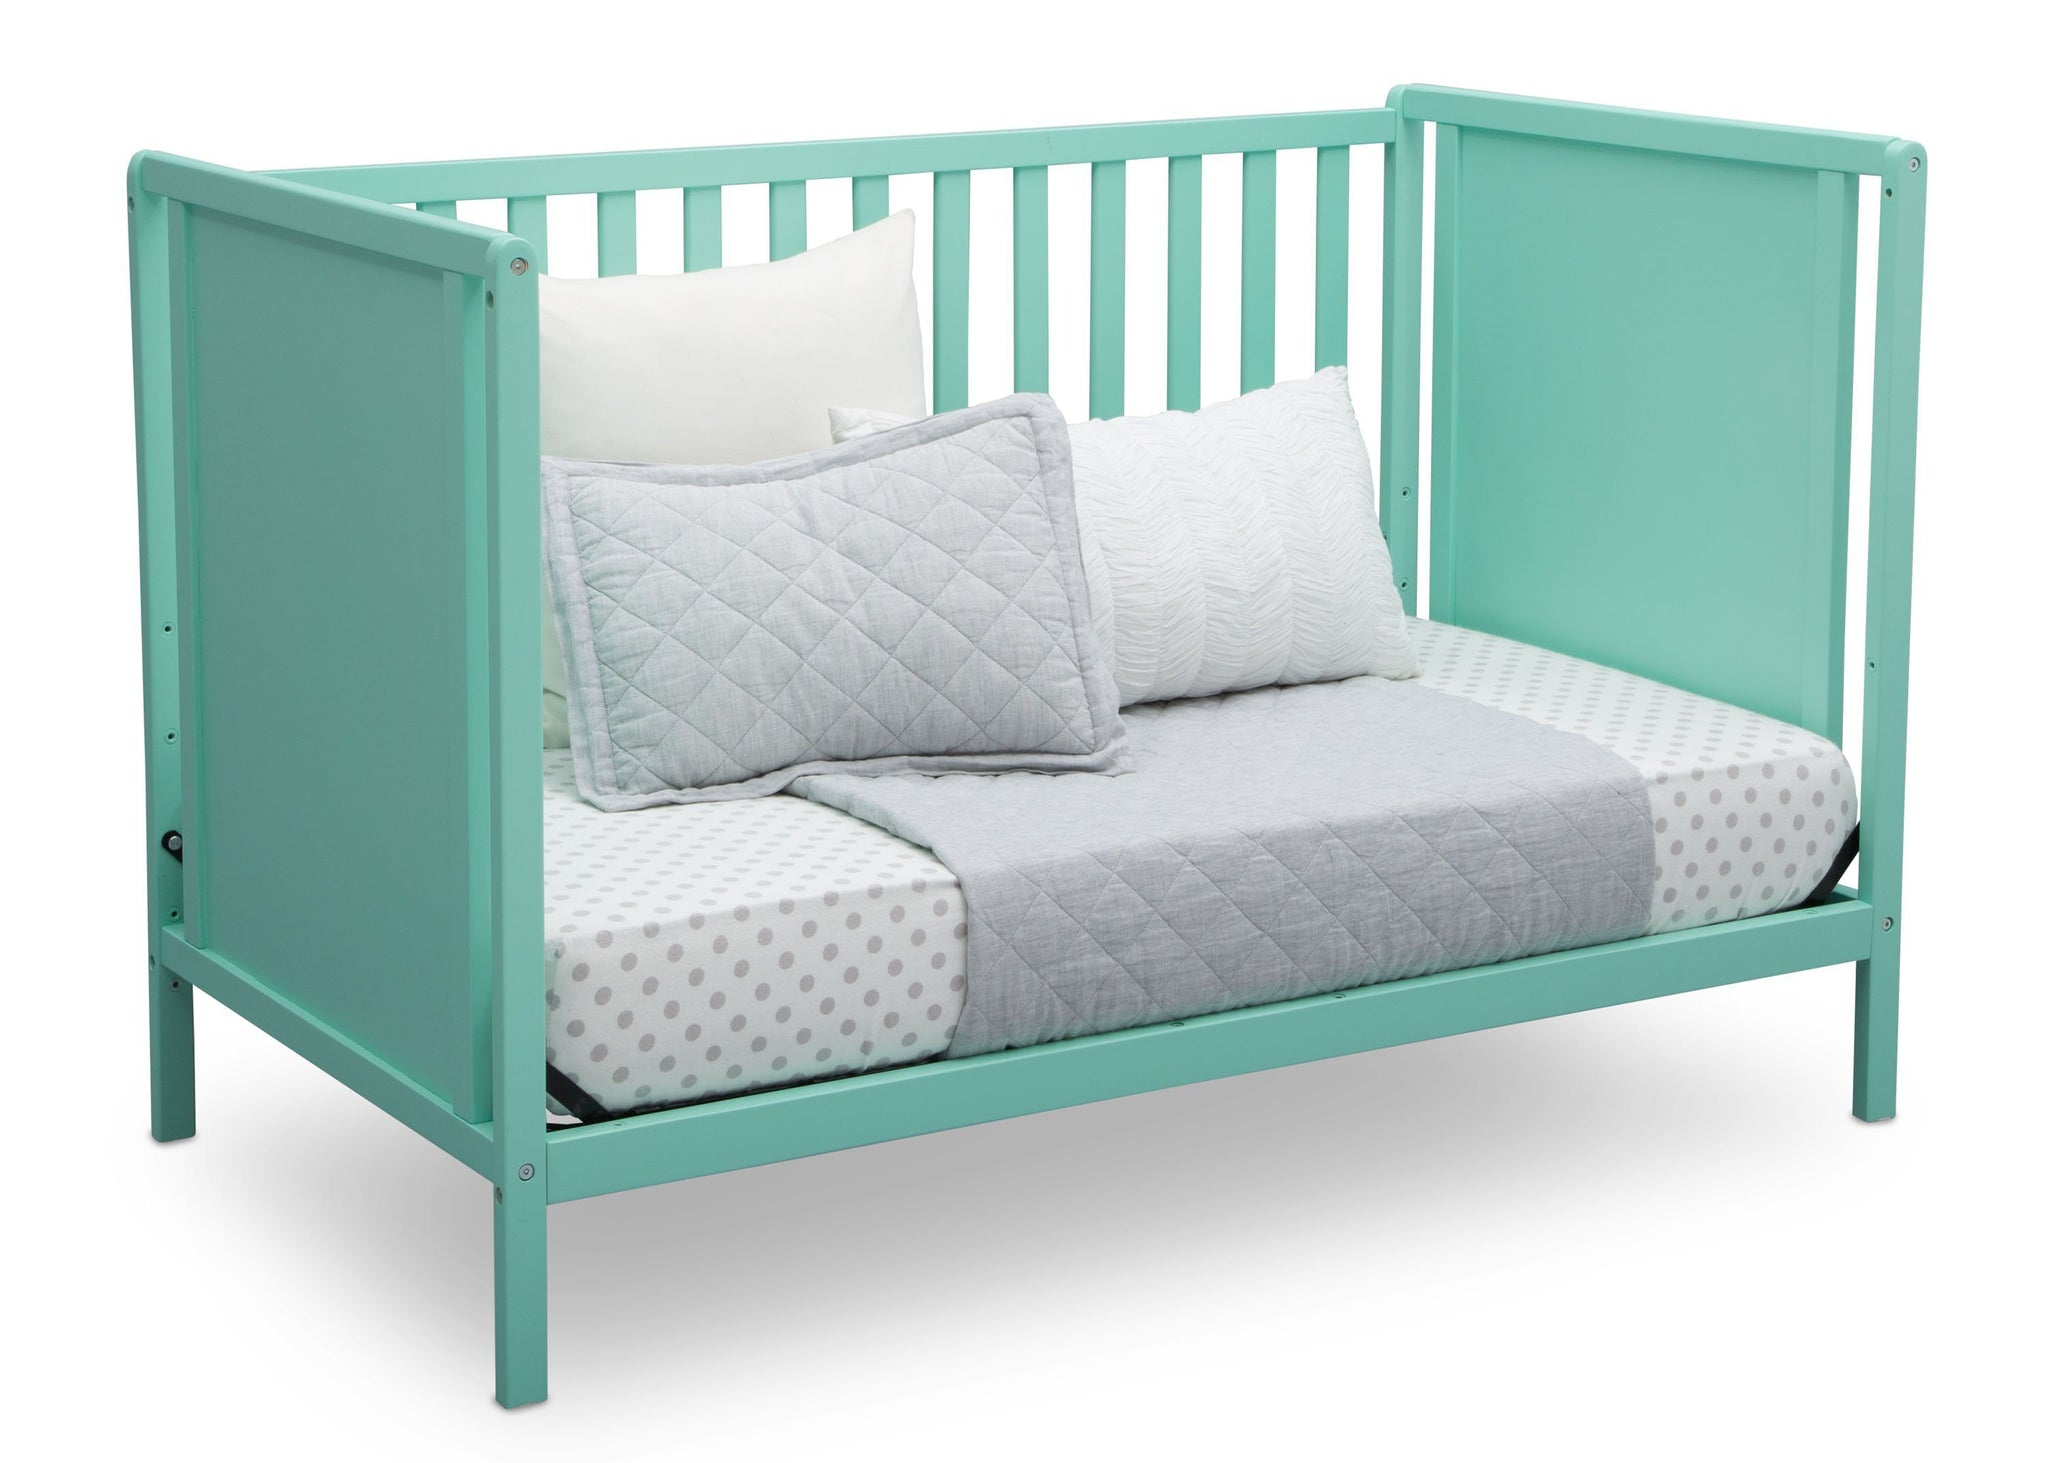 Delta Children Aqua (347) Heartland Classic 4-in-1 Convertible Crib, Day Bed Angle, e5e